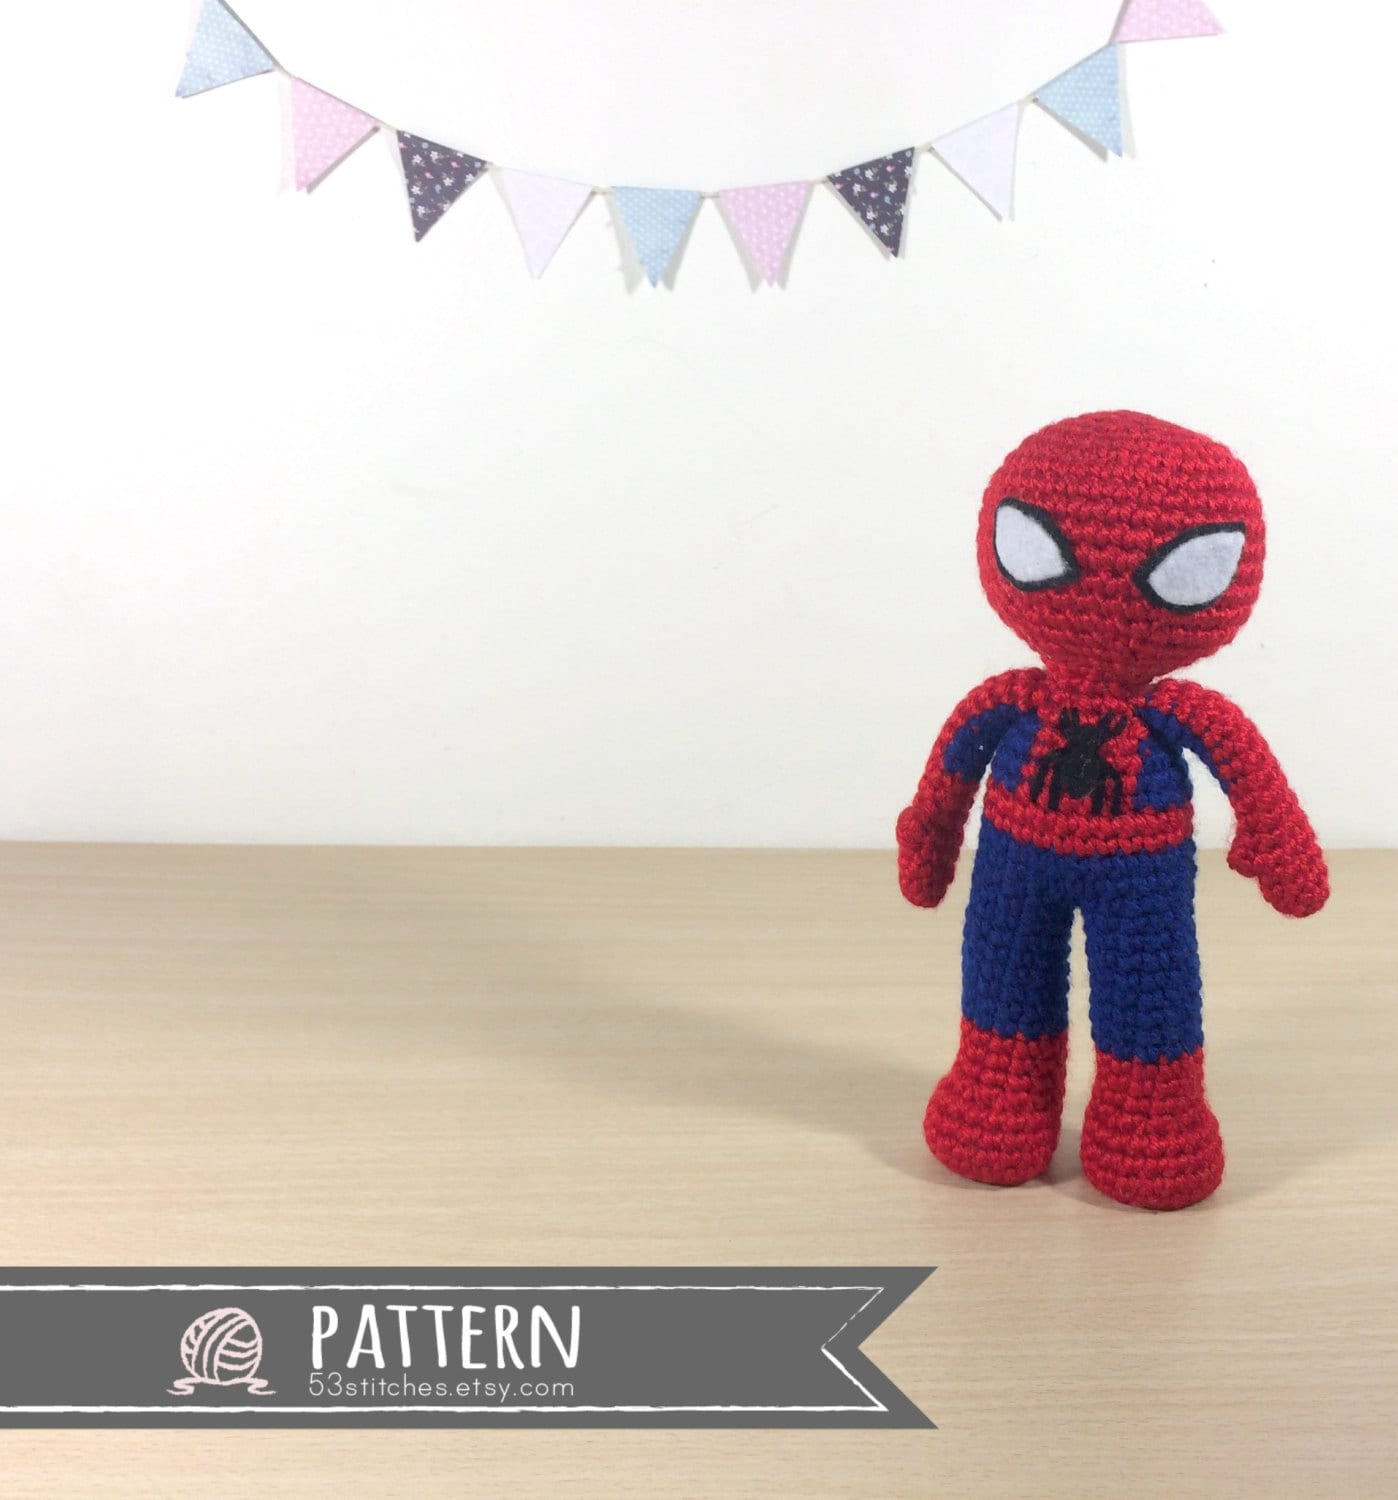 Spiderman Amigurumi Crochet Doll Pattern